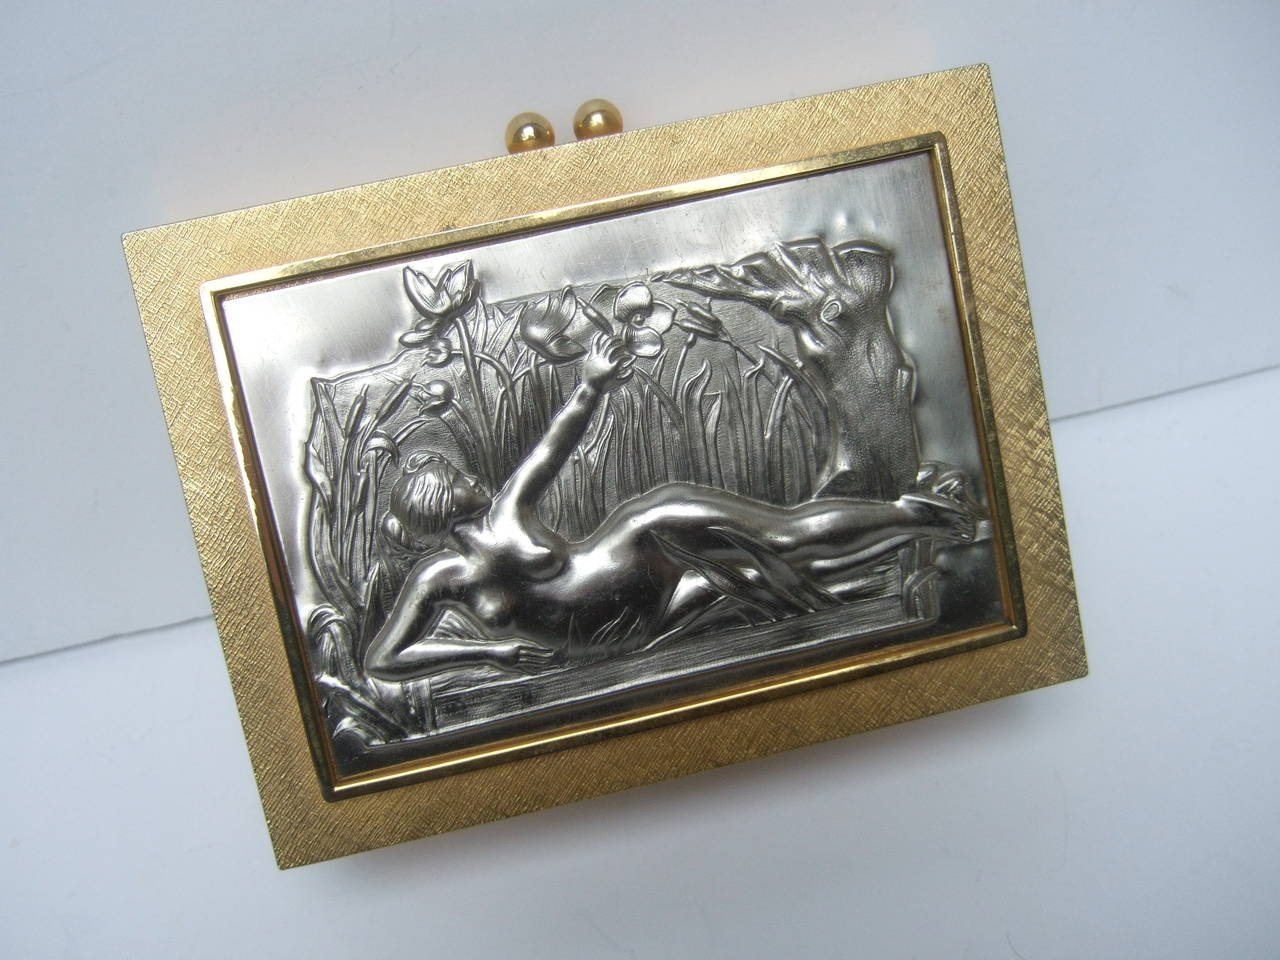 Exquisite Italian Gilt Metal Evening Bag Designed by Harry Rosenfeld For Sale 1